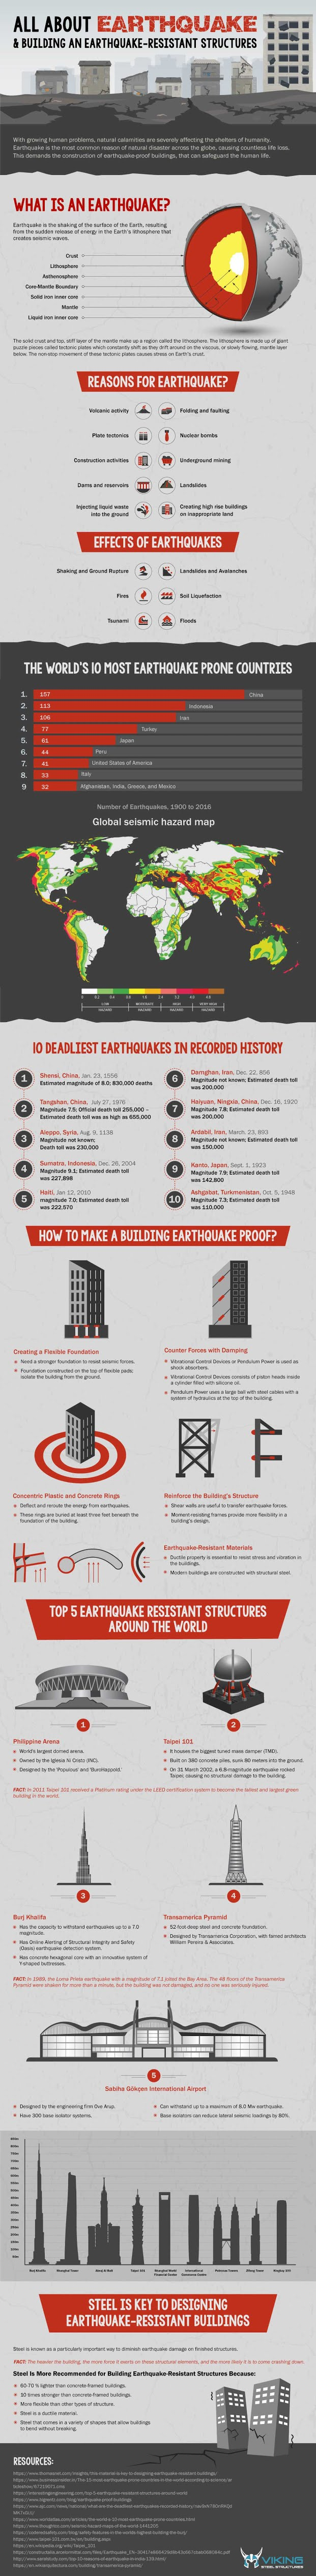 All About Earthquake & Building an Earthquake-Resistant Structures #infographic